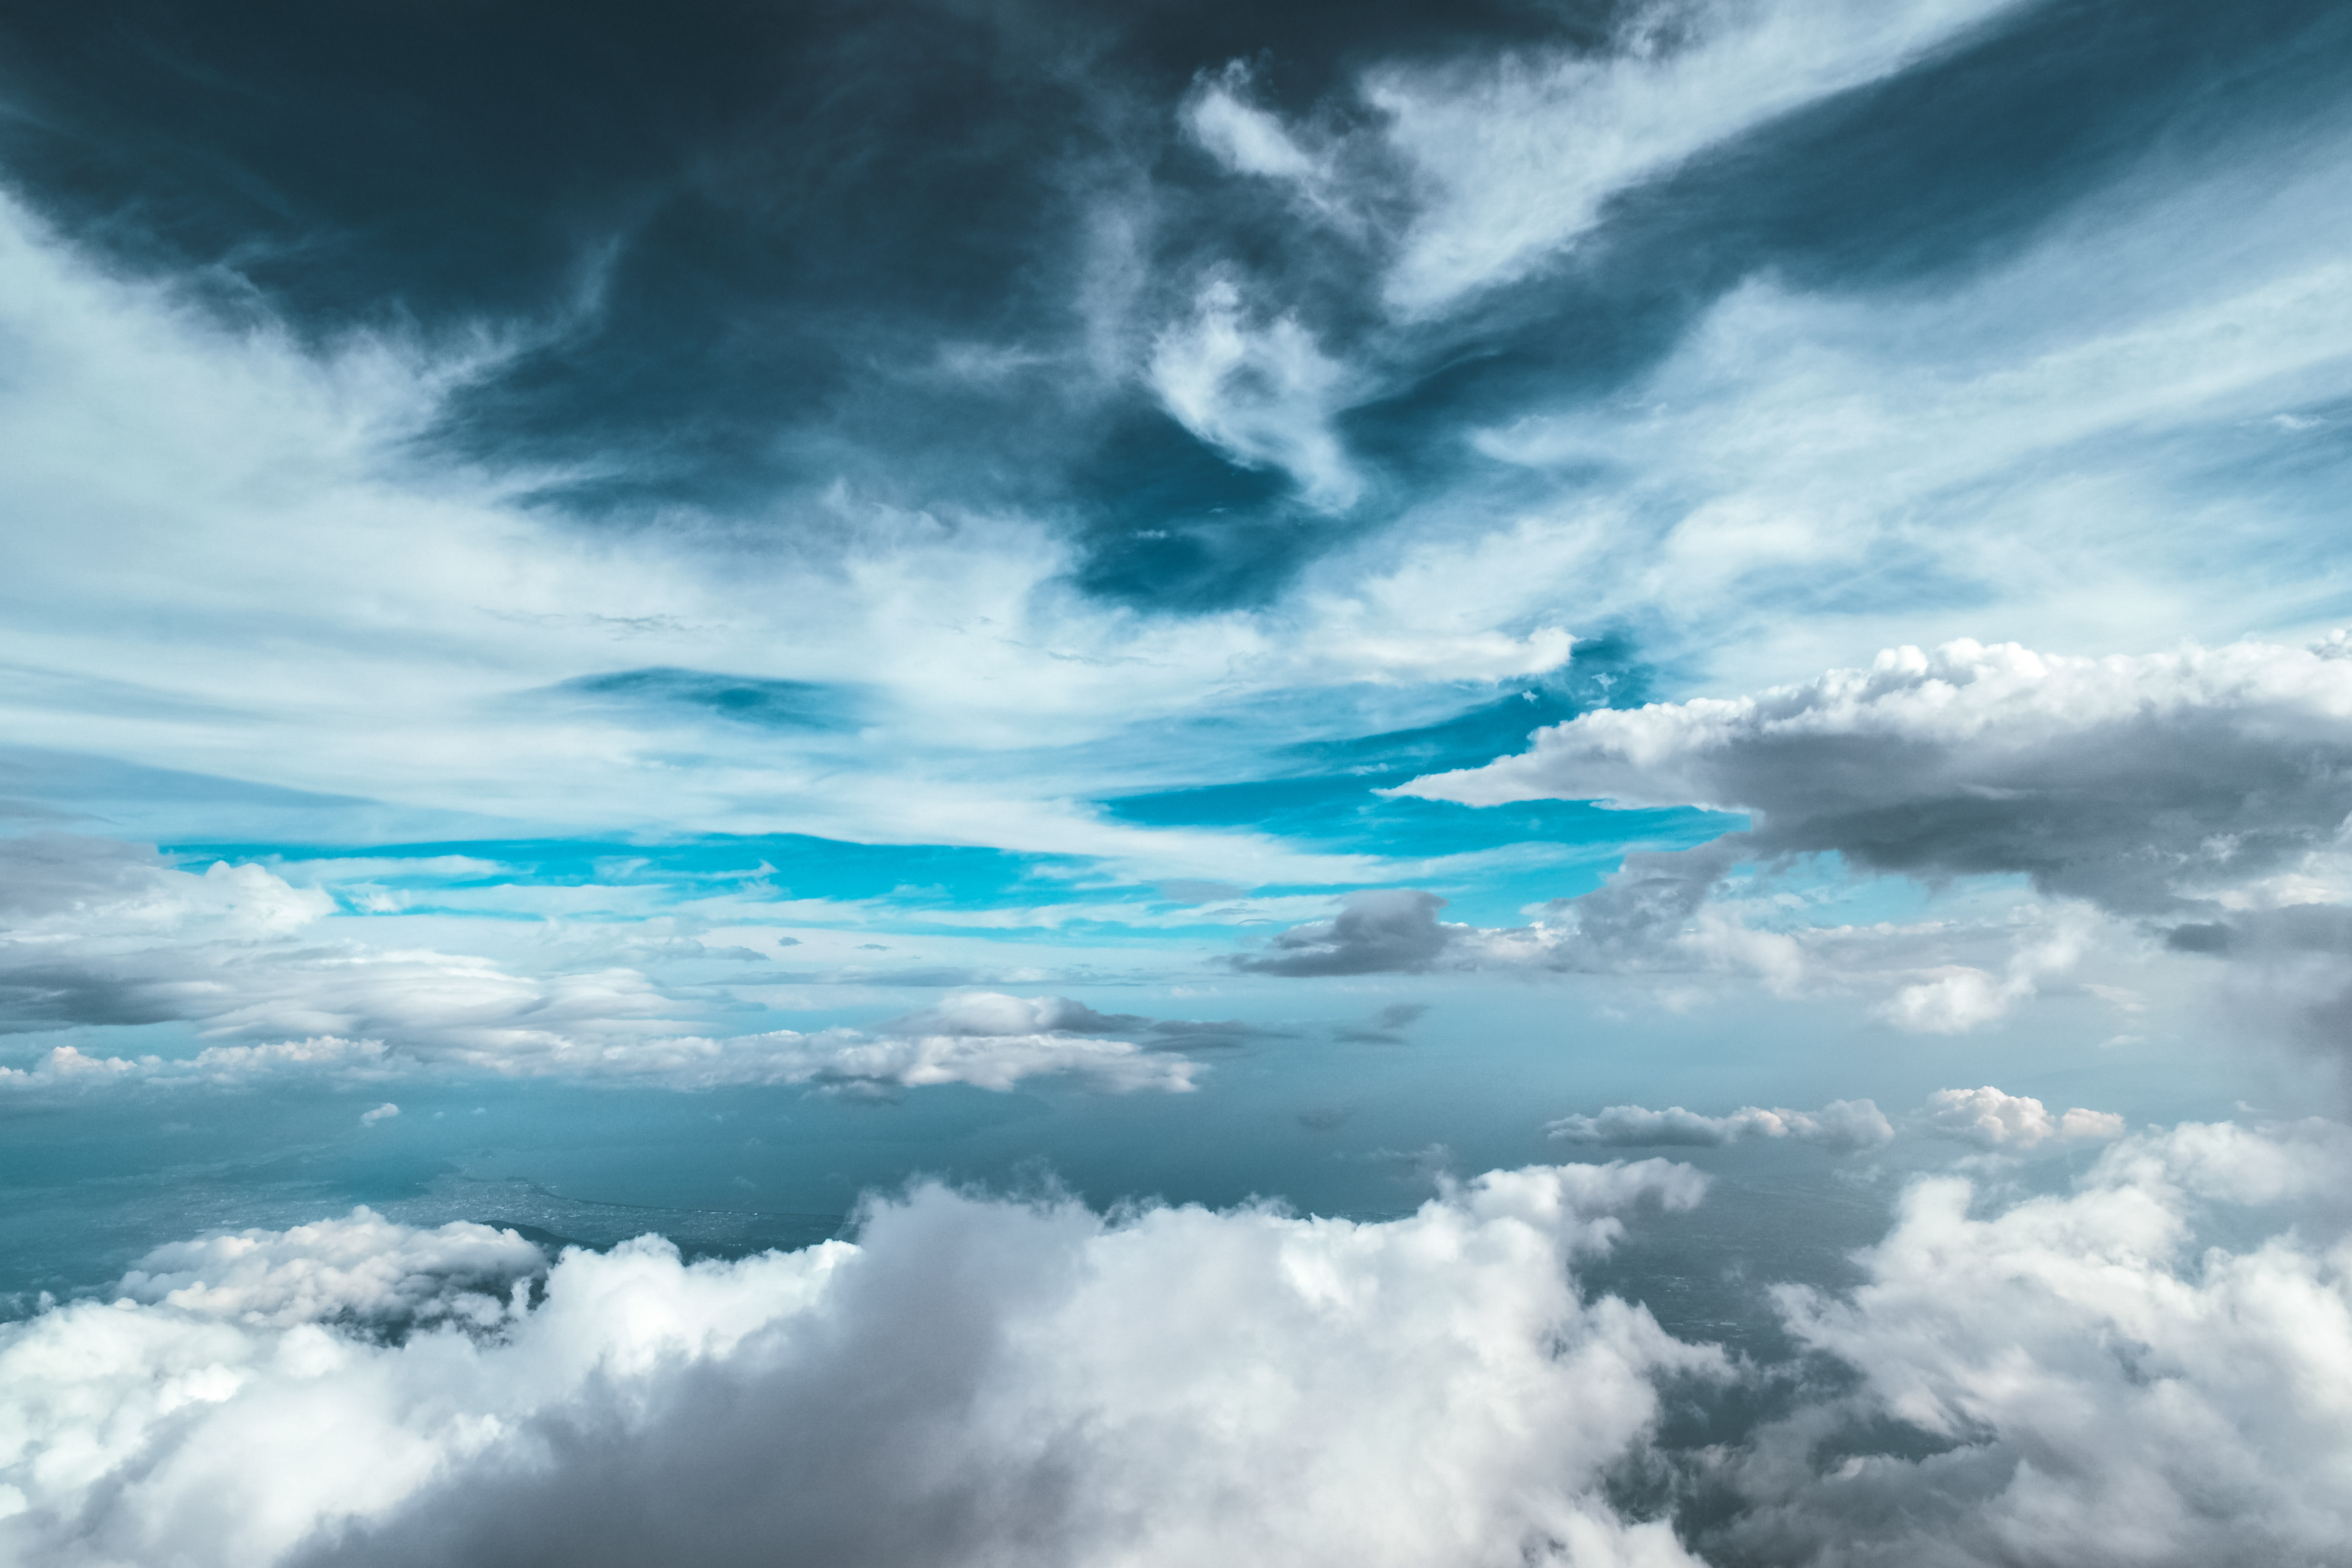 Wallpaper Clouds Blue Sky Hd 5k Nature 3492: Clear Sky Clouds Nature 5k, HD Nature, 4k Wallpapers